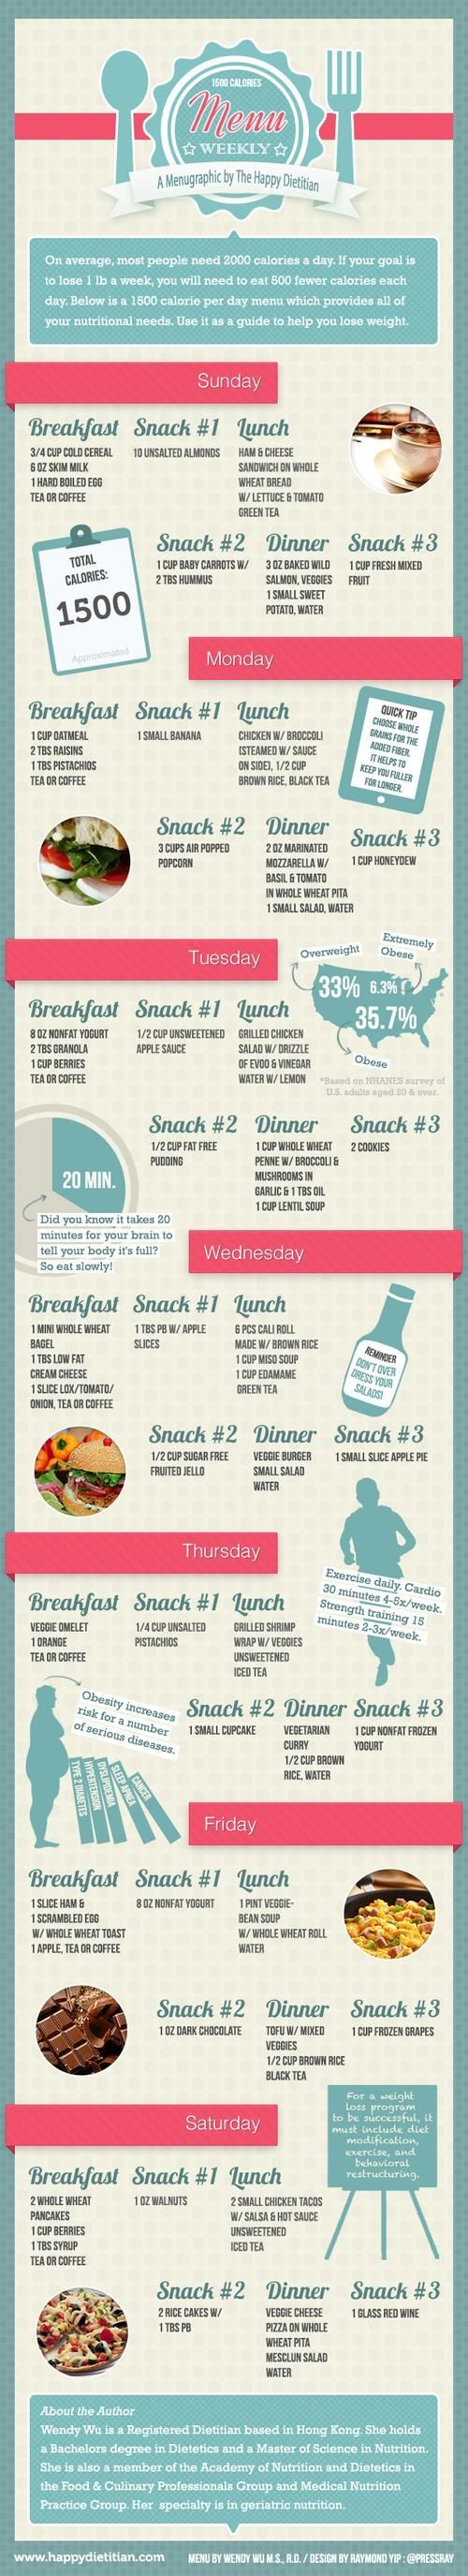 Foodista | The 1500 Calories-a-Day Menu [infographic]: